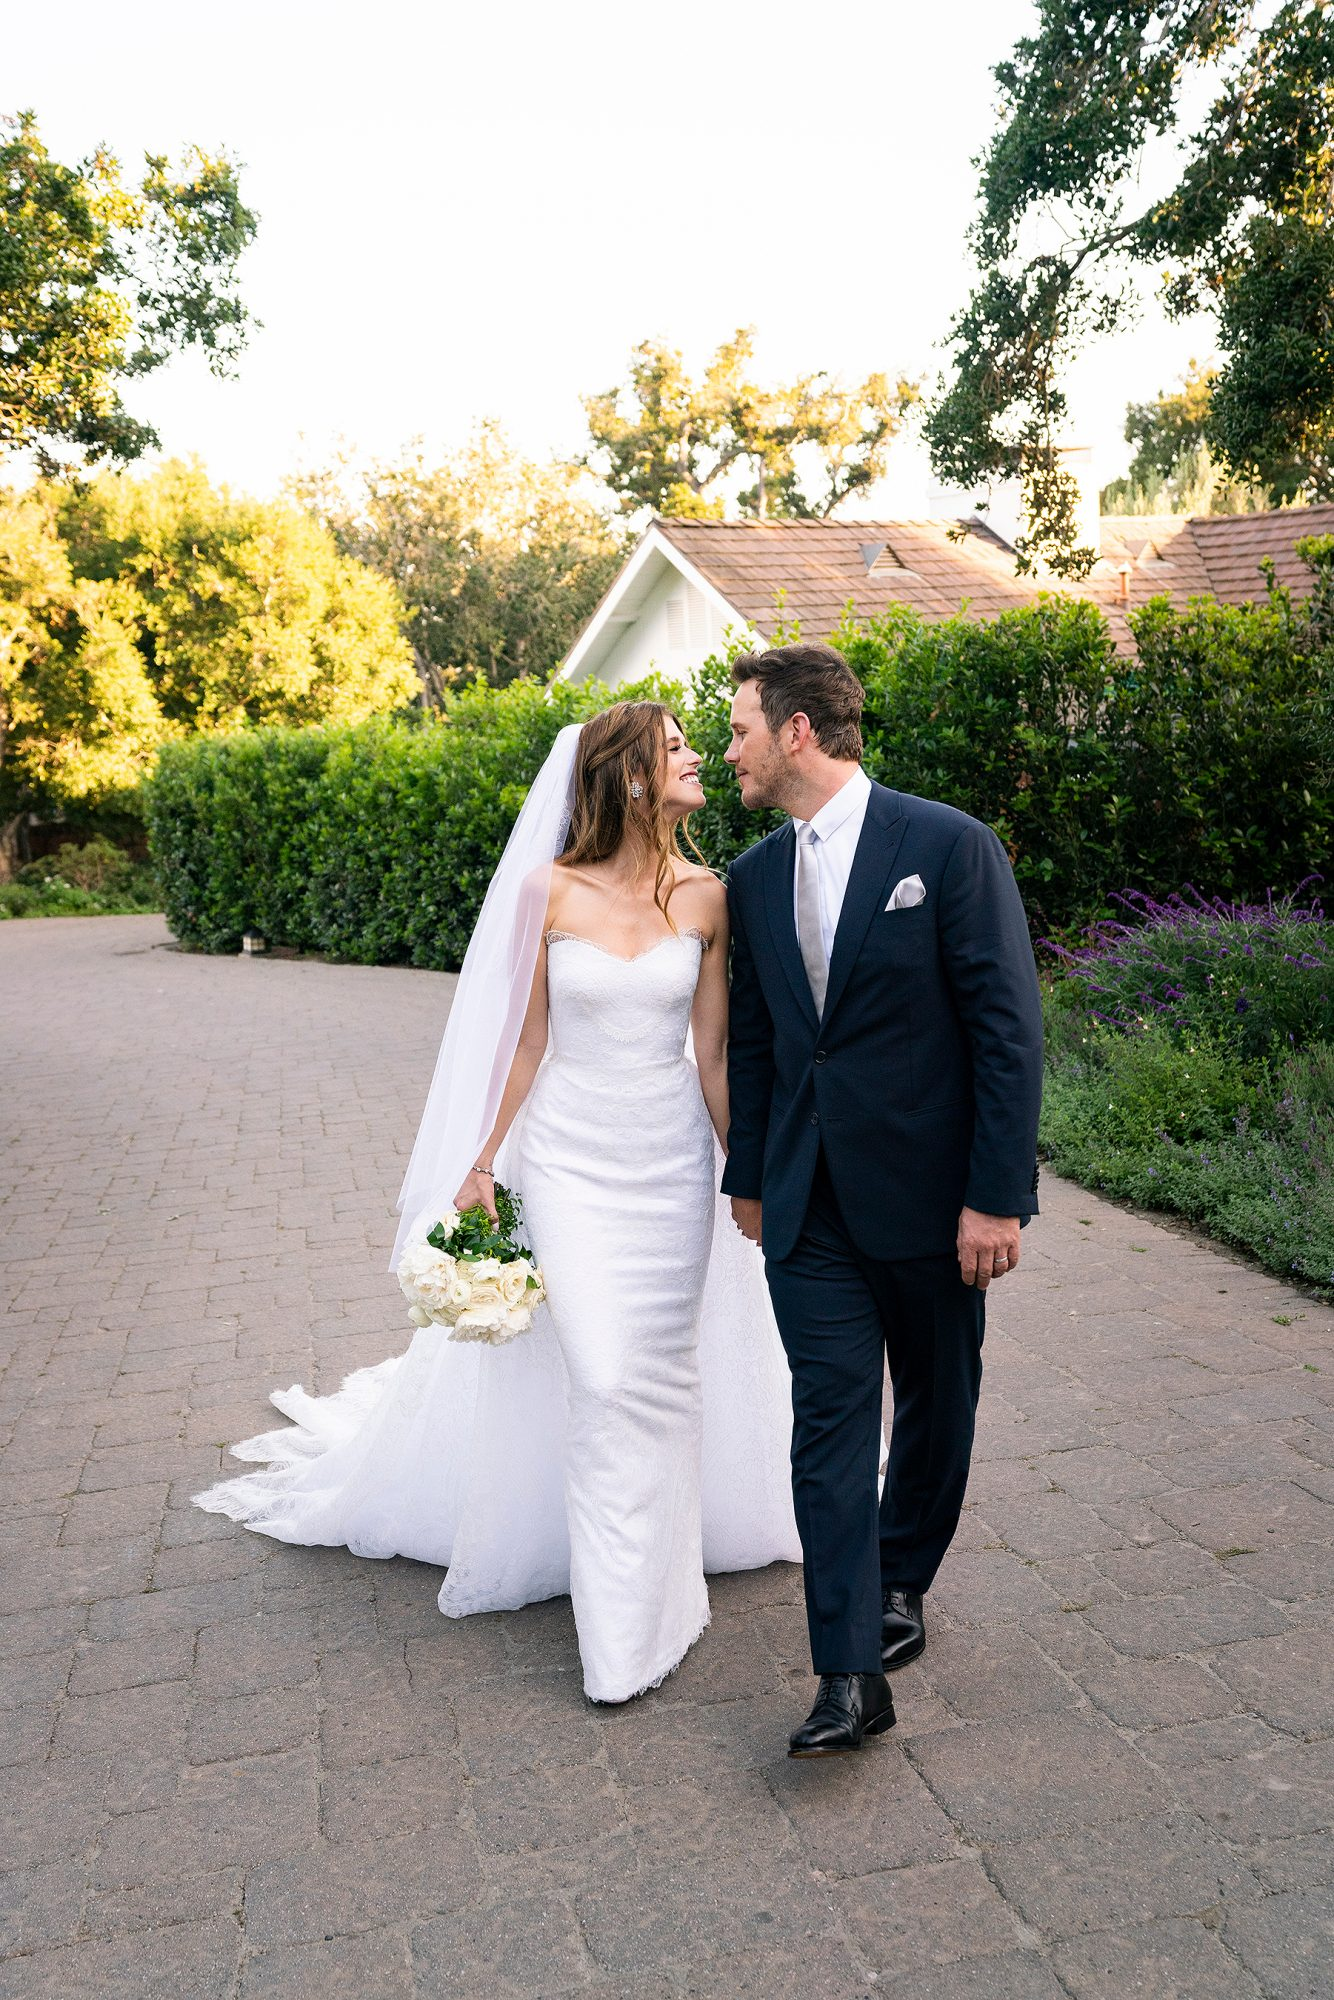 Chris Pratt Katherine Schwarzenegger wedding